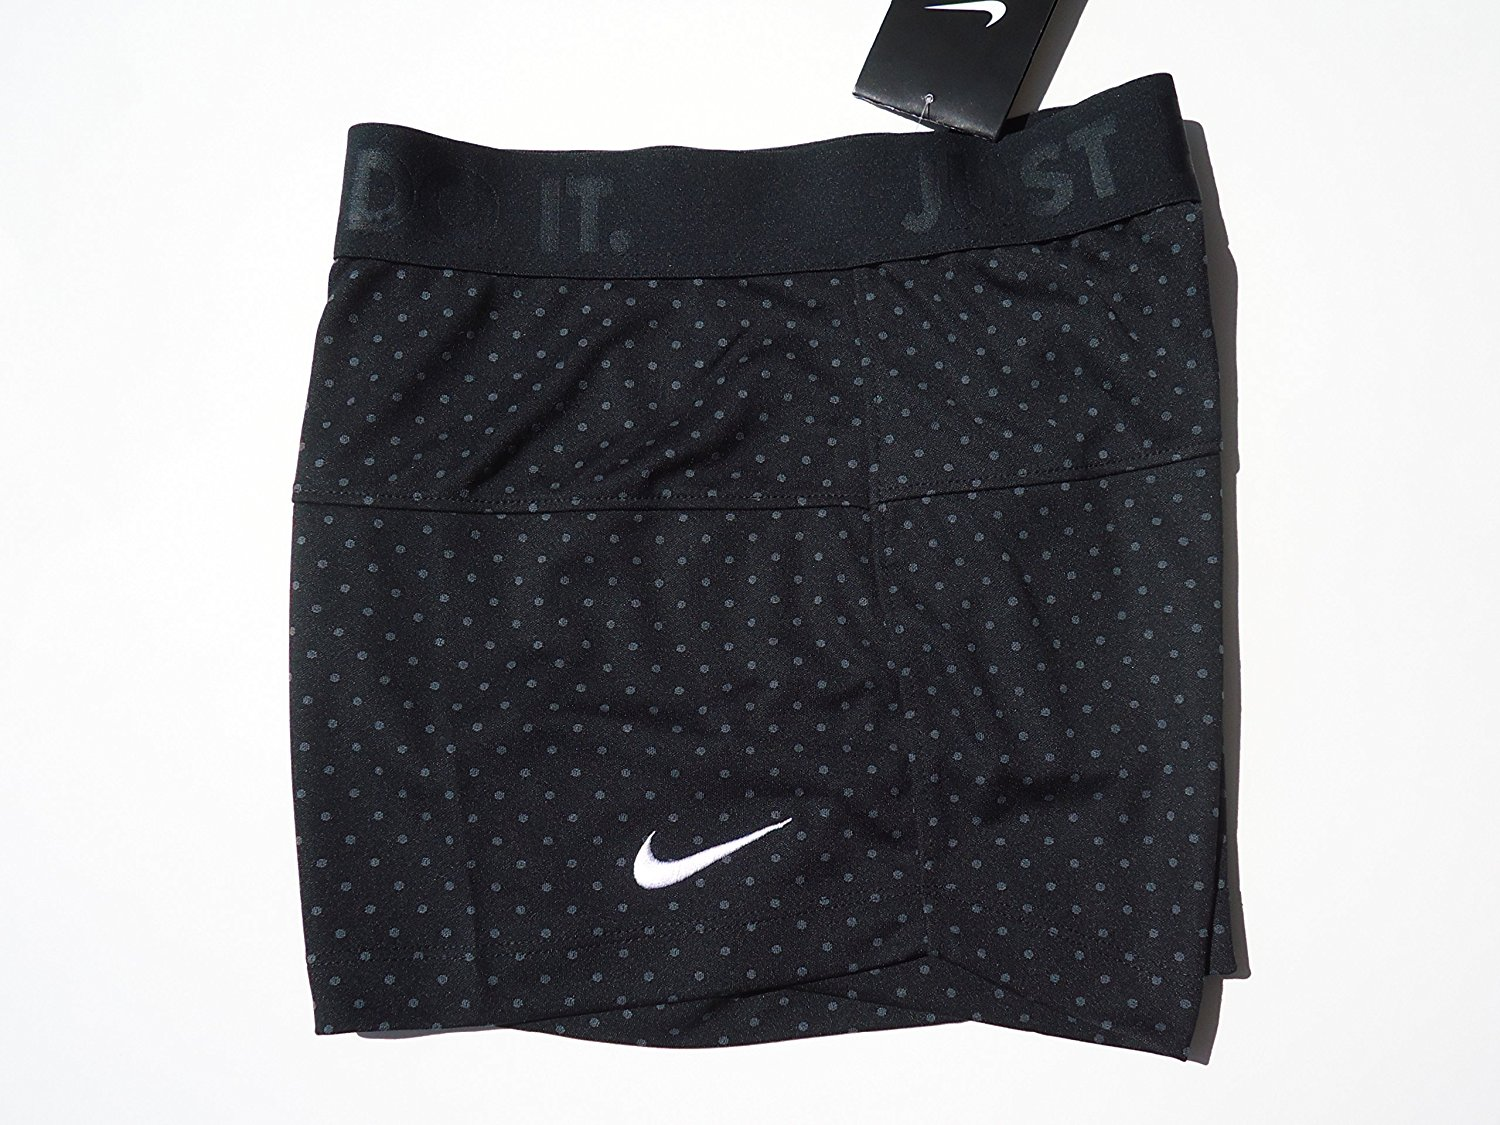 Nike Women s DRI-FIT Shorts Black  JUST DO IT 8e191f97ab